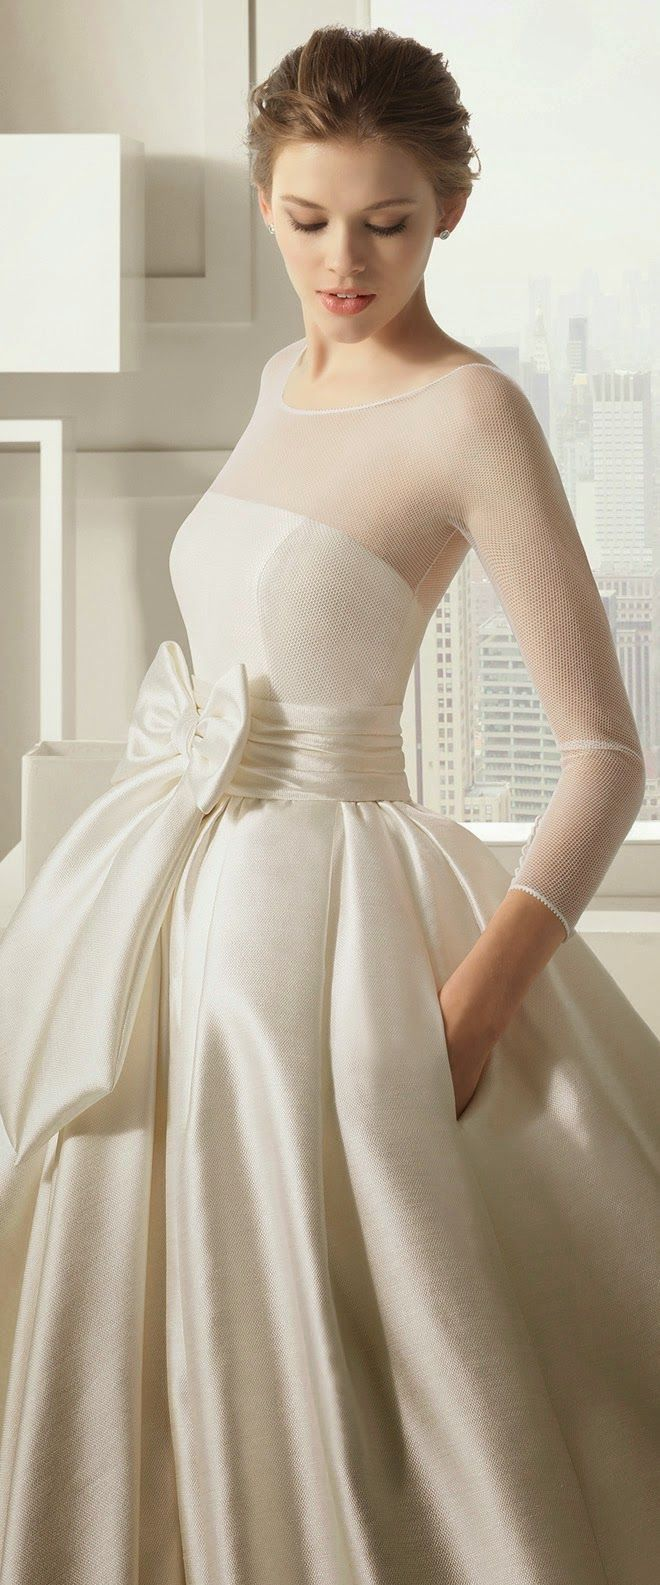 Best wedding dresses for broad shoulders   Best images about Bridal Gowns on Pinterest  Gowns Wedding